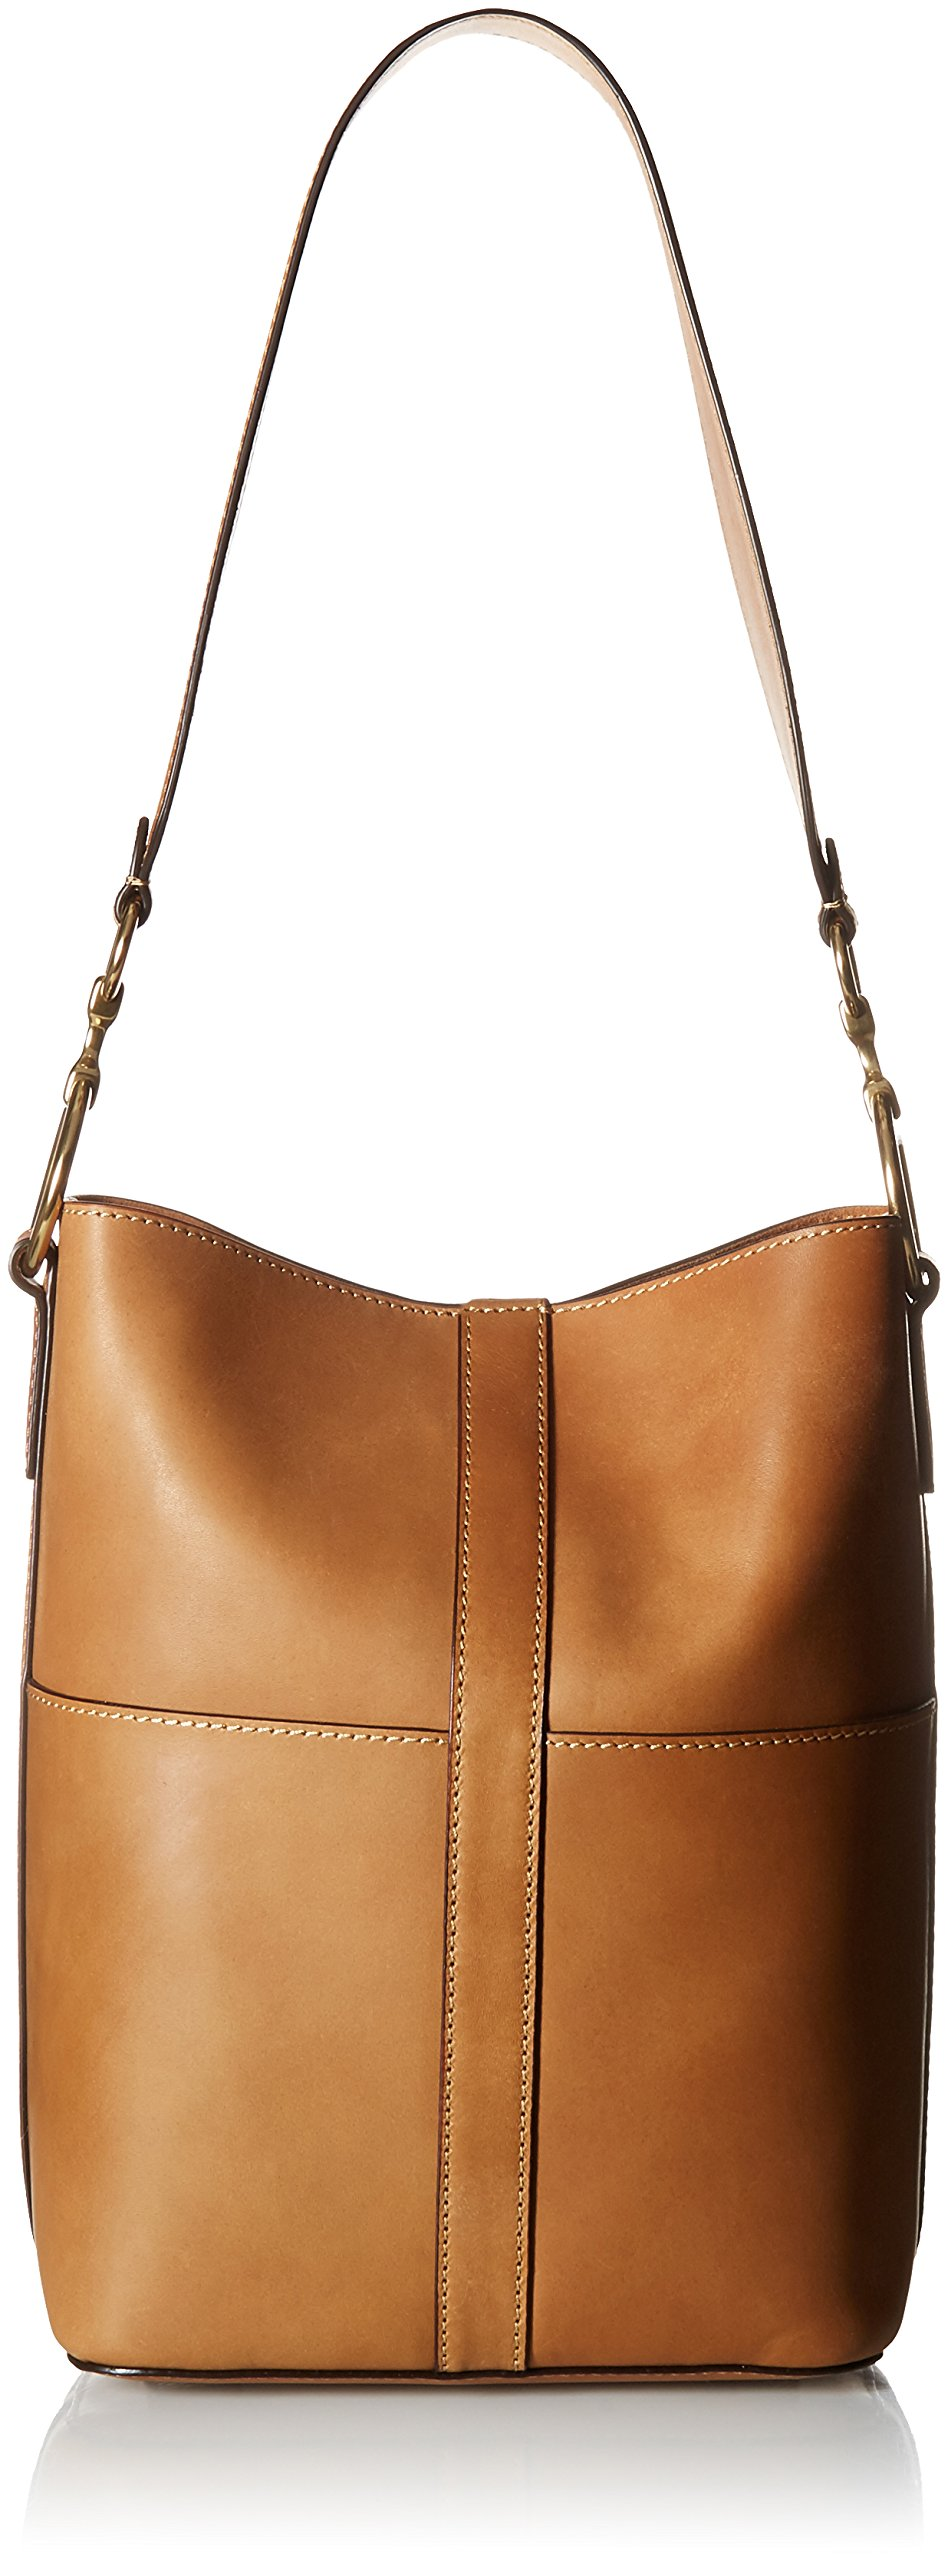 FRYE Ilana Harness Bucket Hobo, Cognac by FRYE